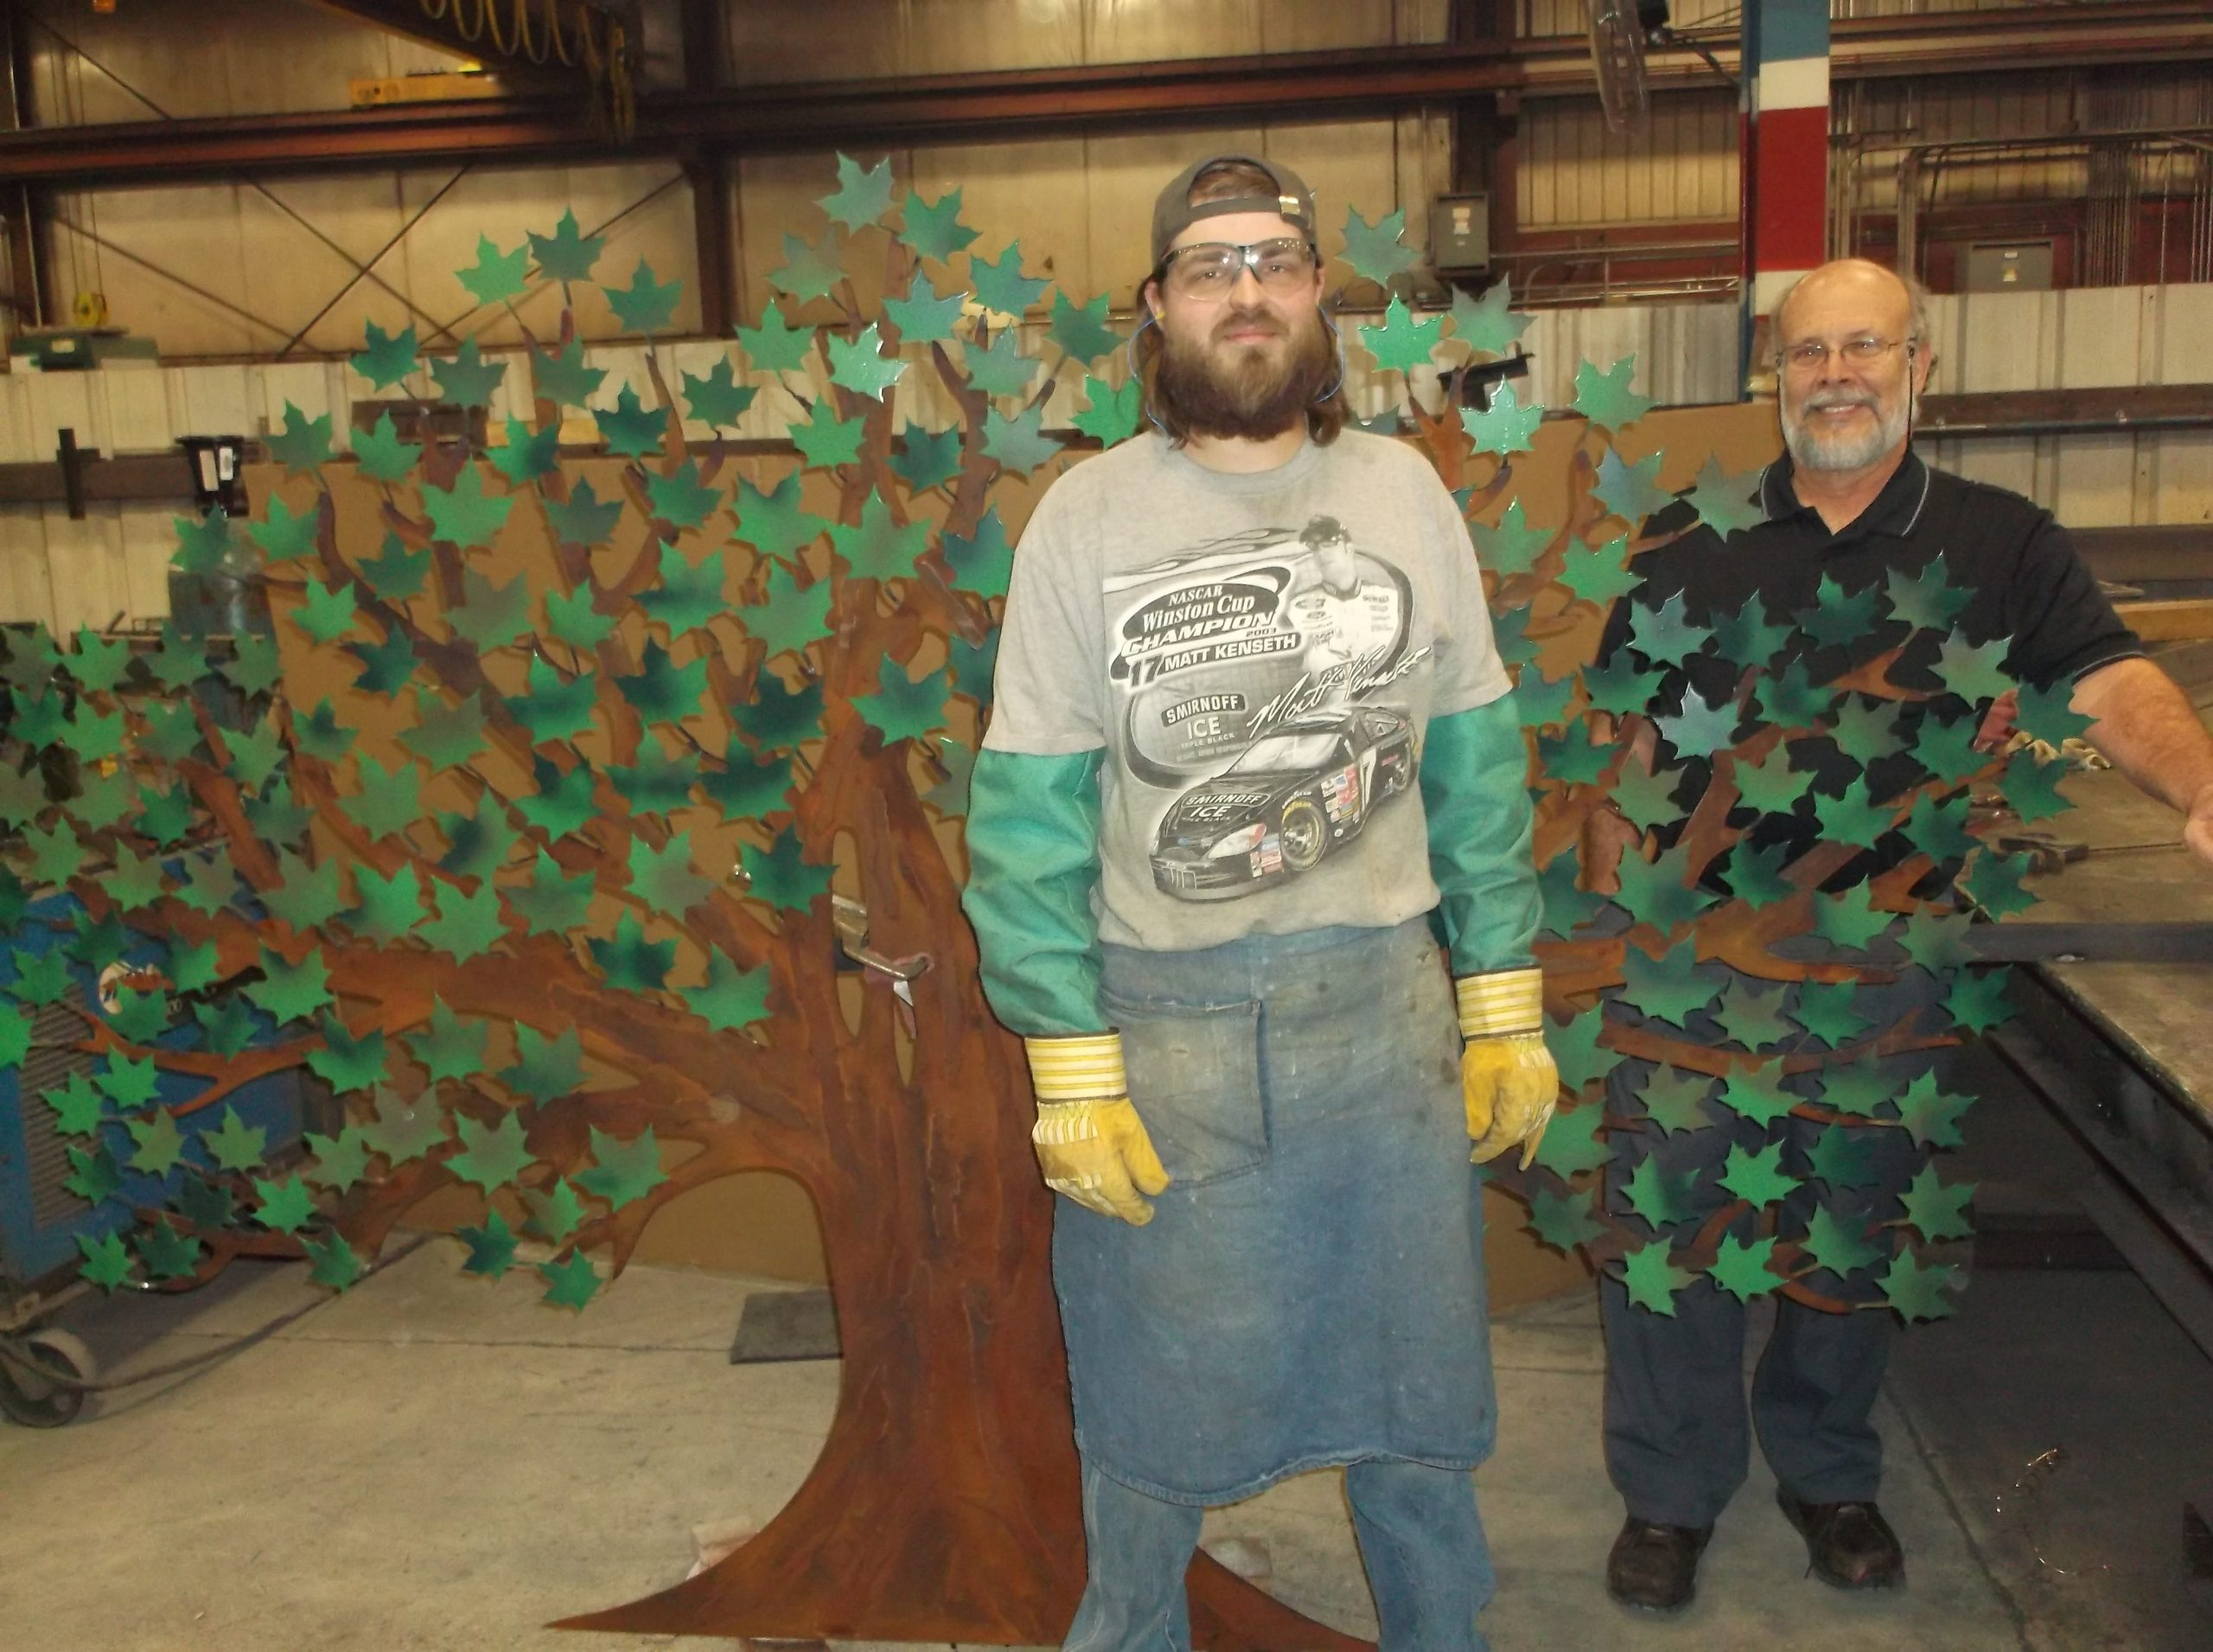 Nate and Bernie with the doation tree for Senior Citizen Center in Beaver Dam